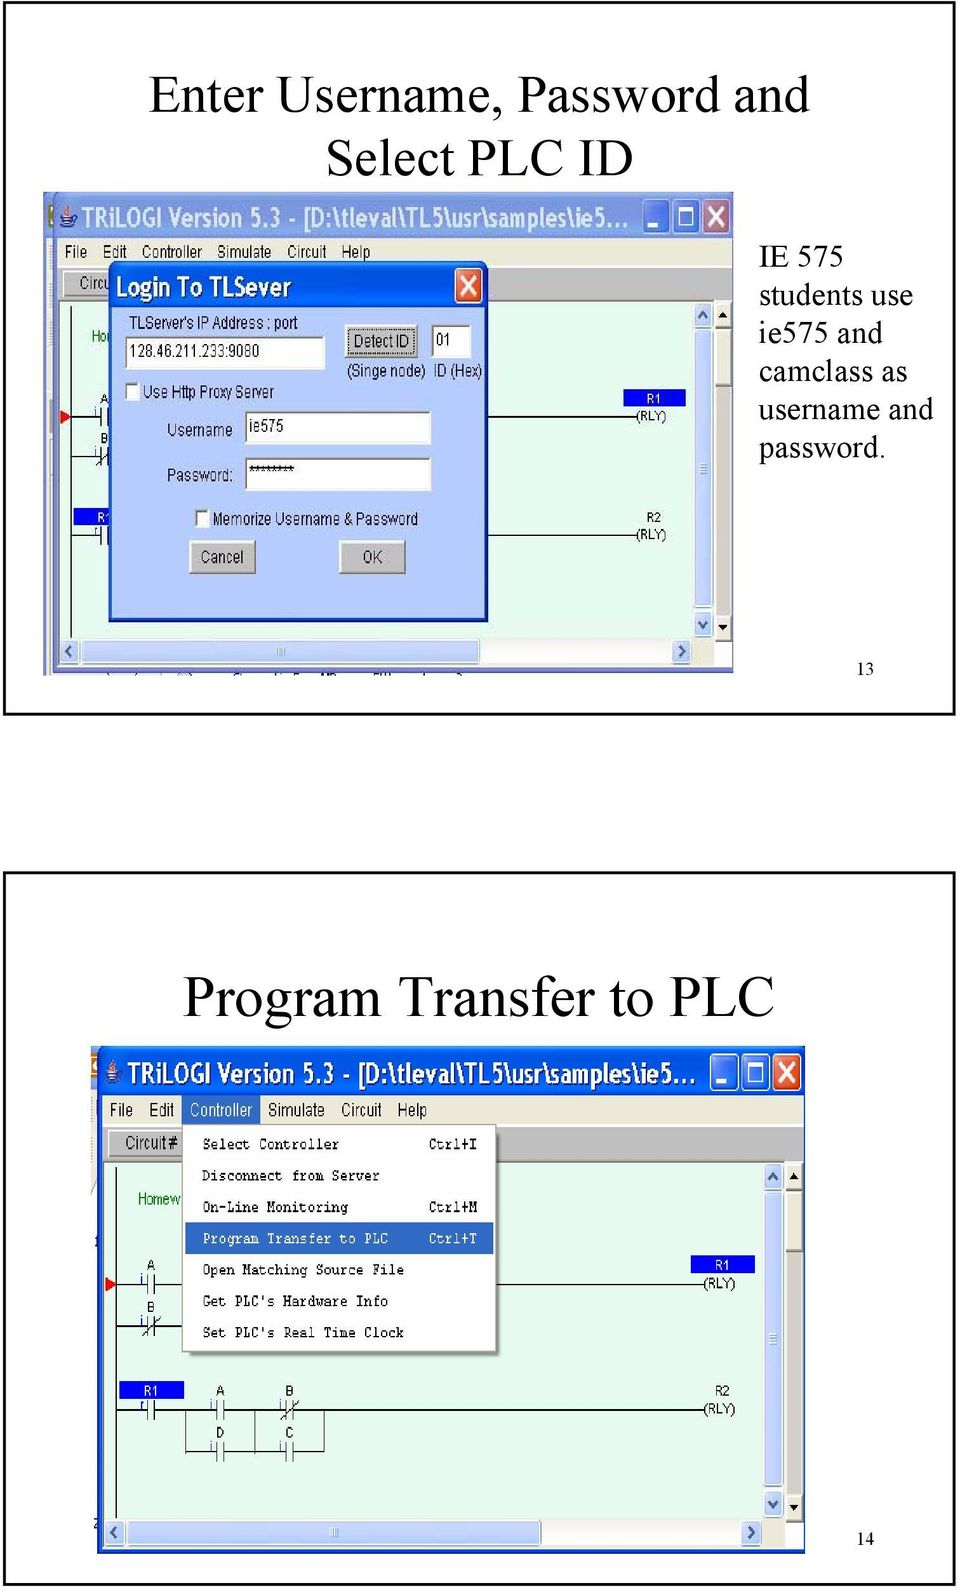 Trilogi 53 Plc Ladder Diagram Programmer And Simulator A Tutorial Simulation 13 Program Transfer To 14 Ie575 Camclass As Username